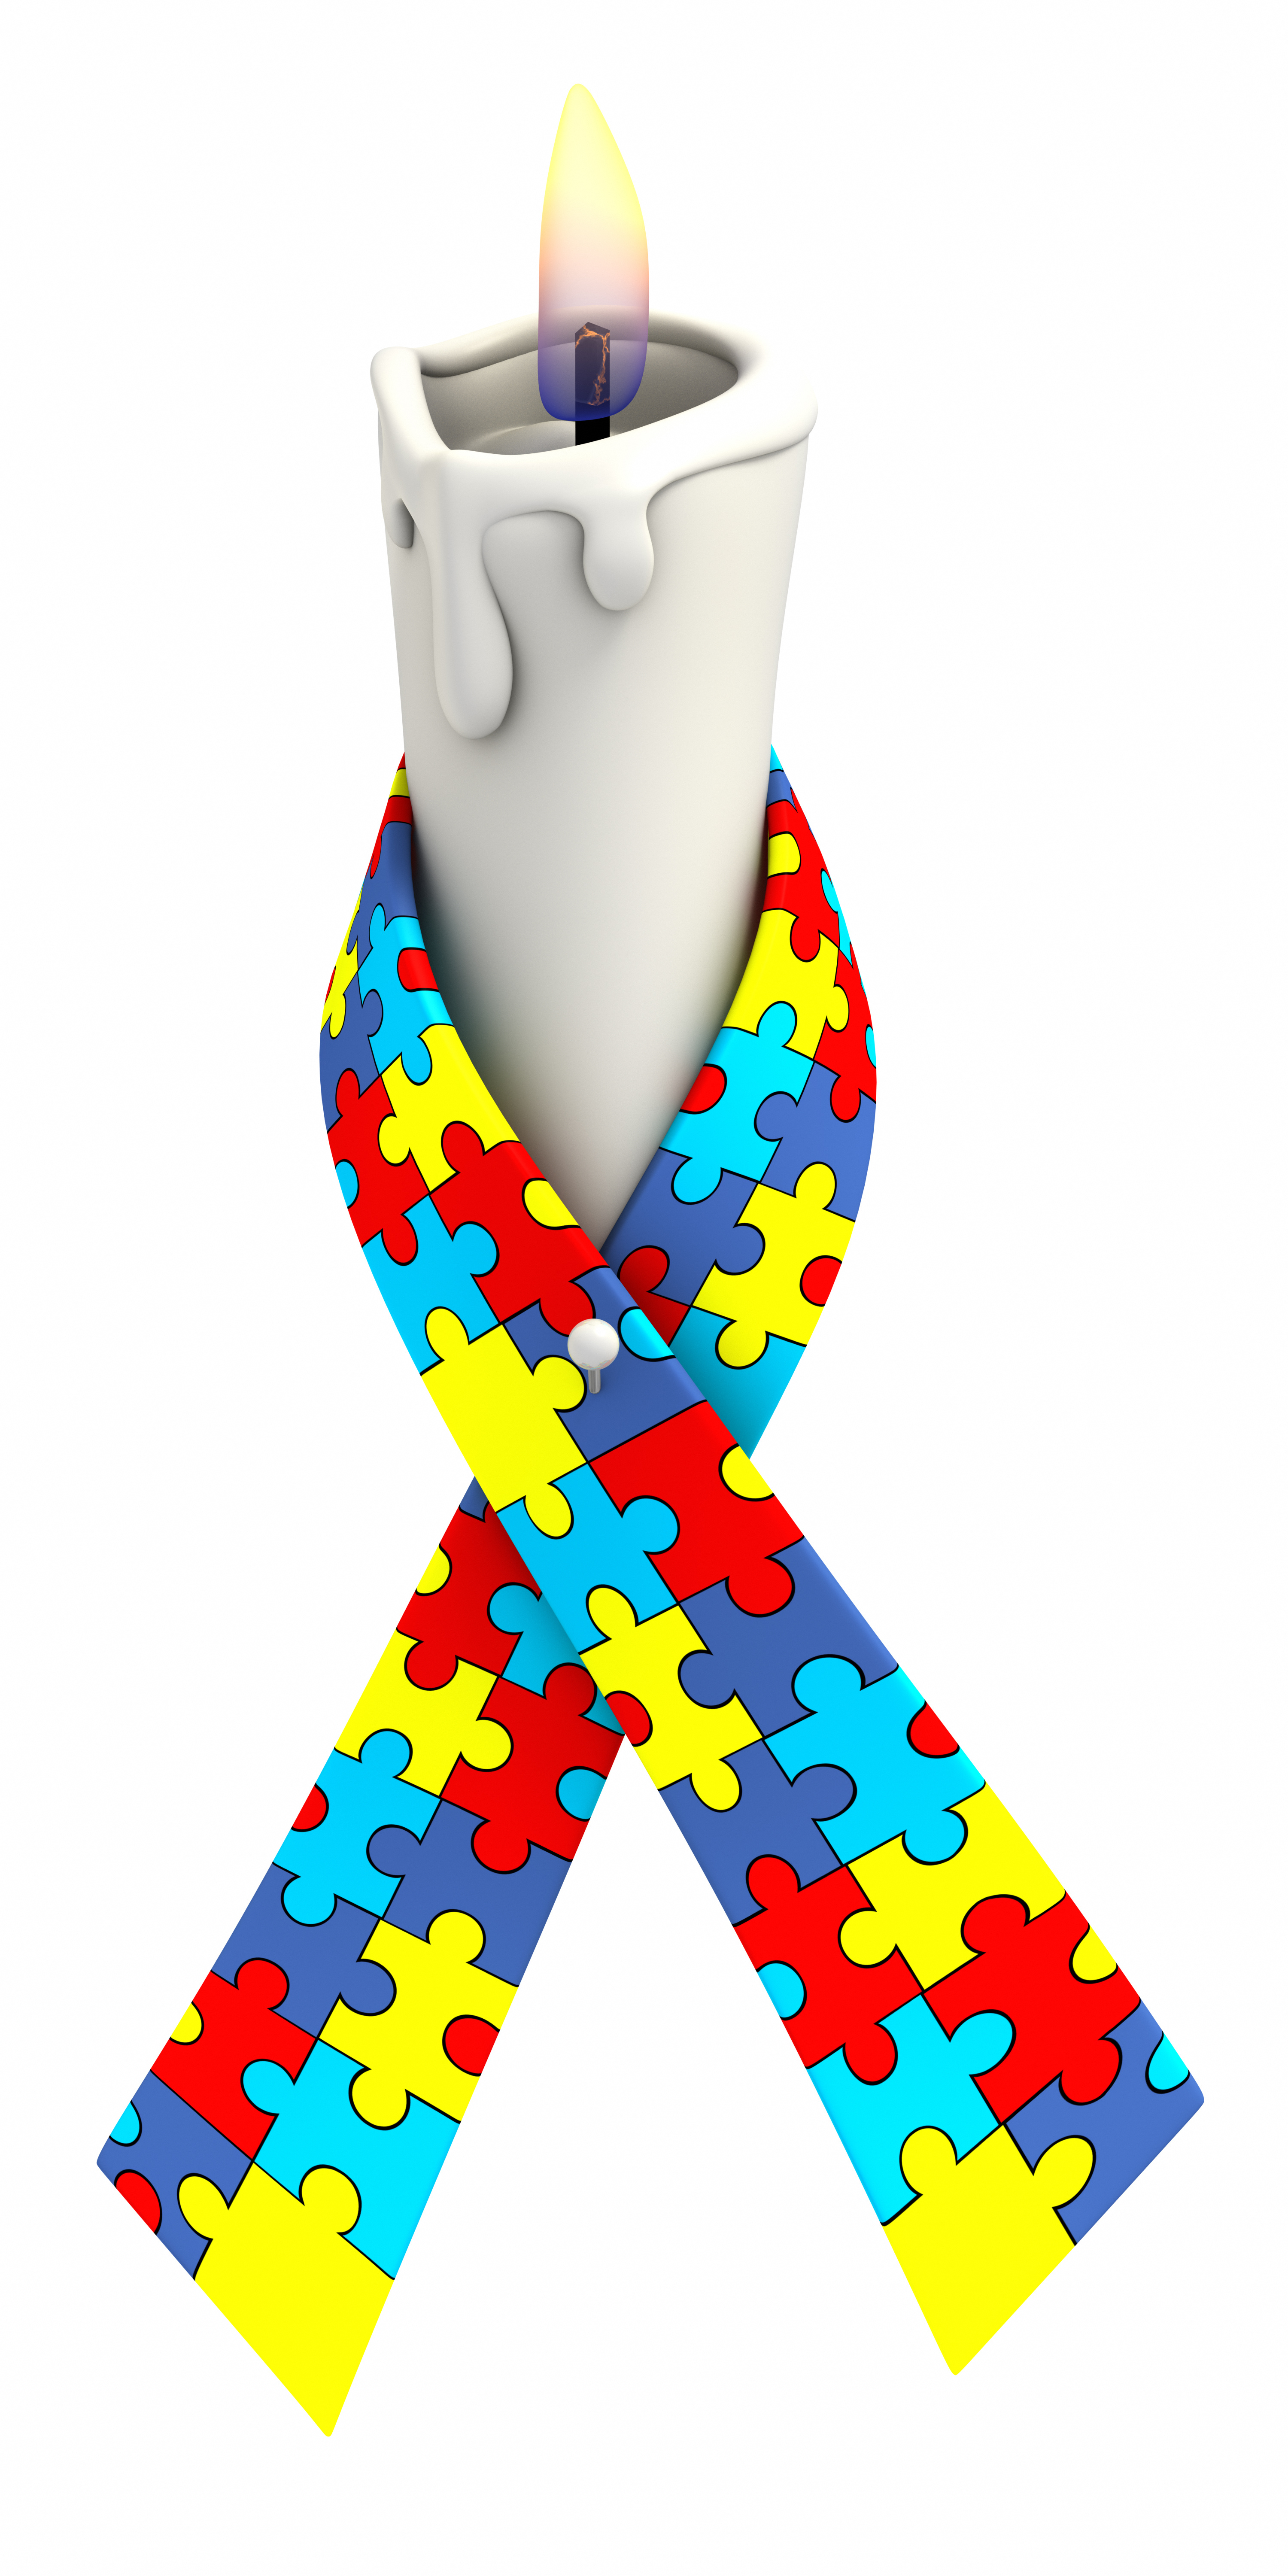 Autism Awareness Ribbon further Un System Chart Eng X besides Emmanuel Mwape also Kosovo Cover additionally Celeste Thorson Headshot Anthony Mongiello. on united nations goals